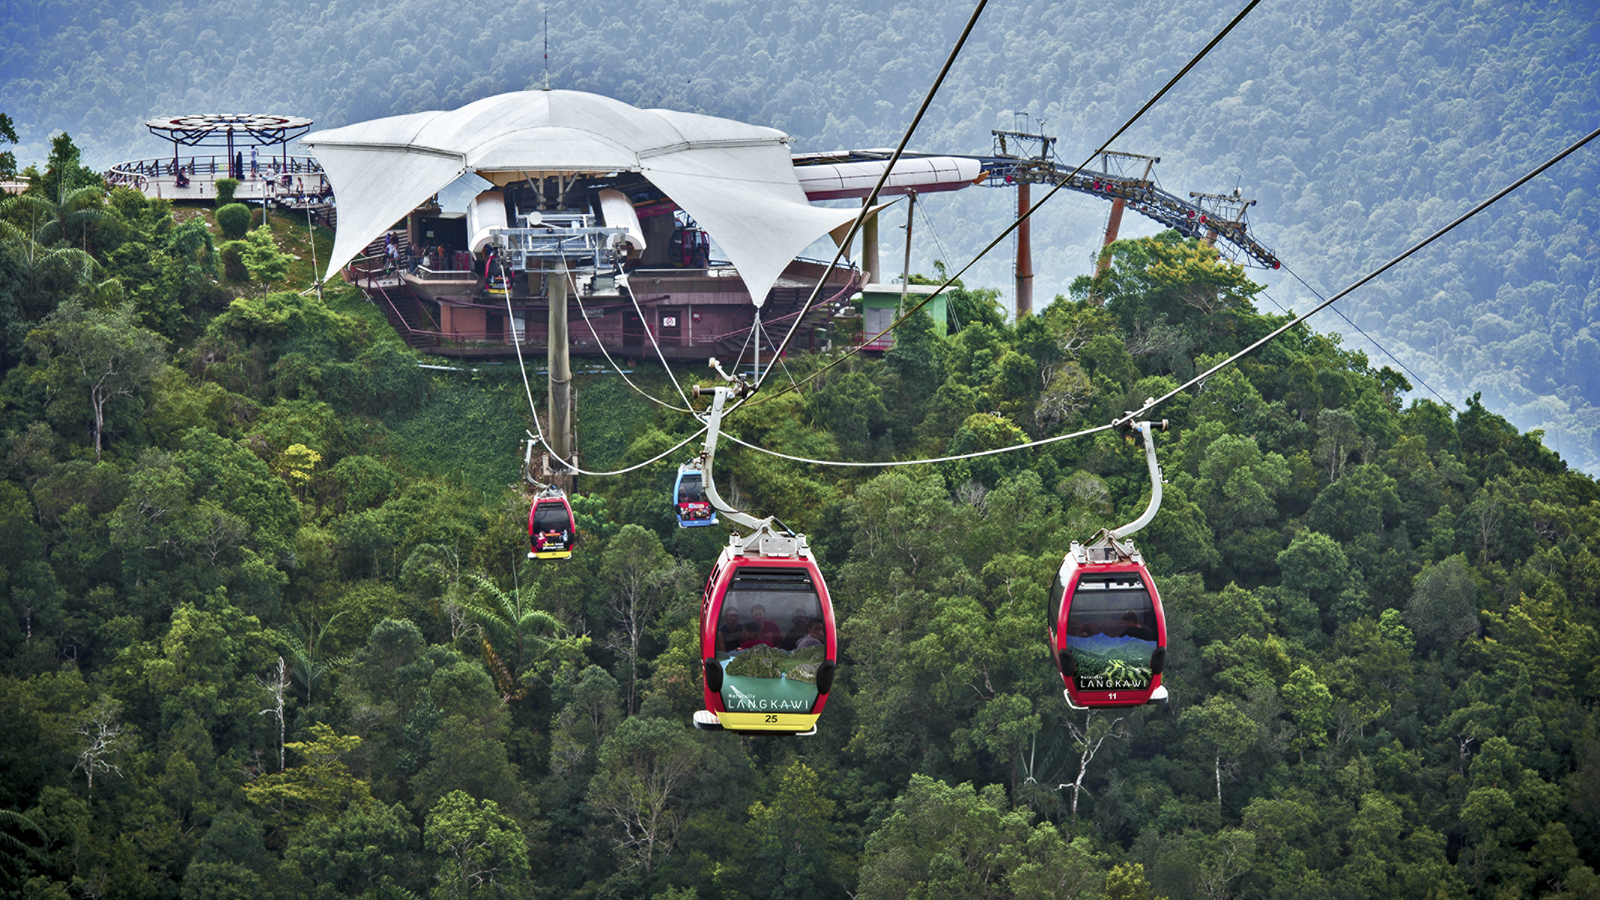 Travelog Langkawi Skycab 4 In 1 Ticket No 1 Attraction